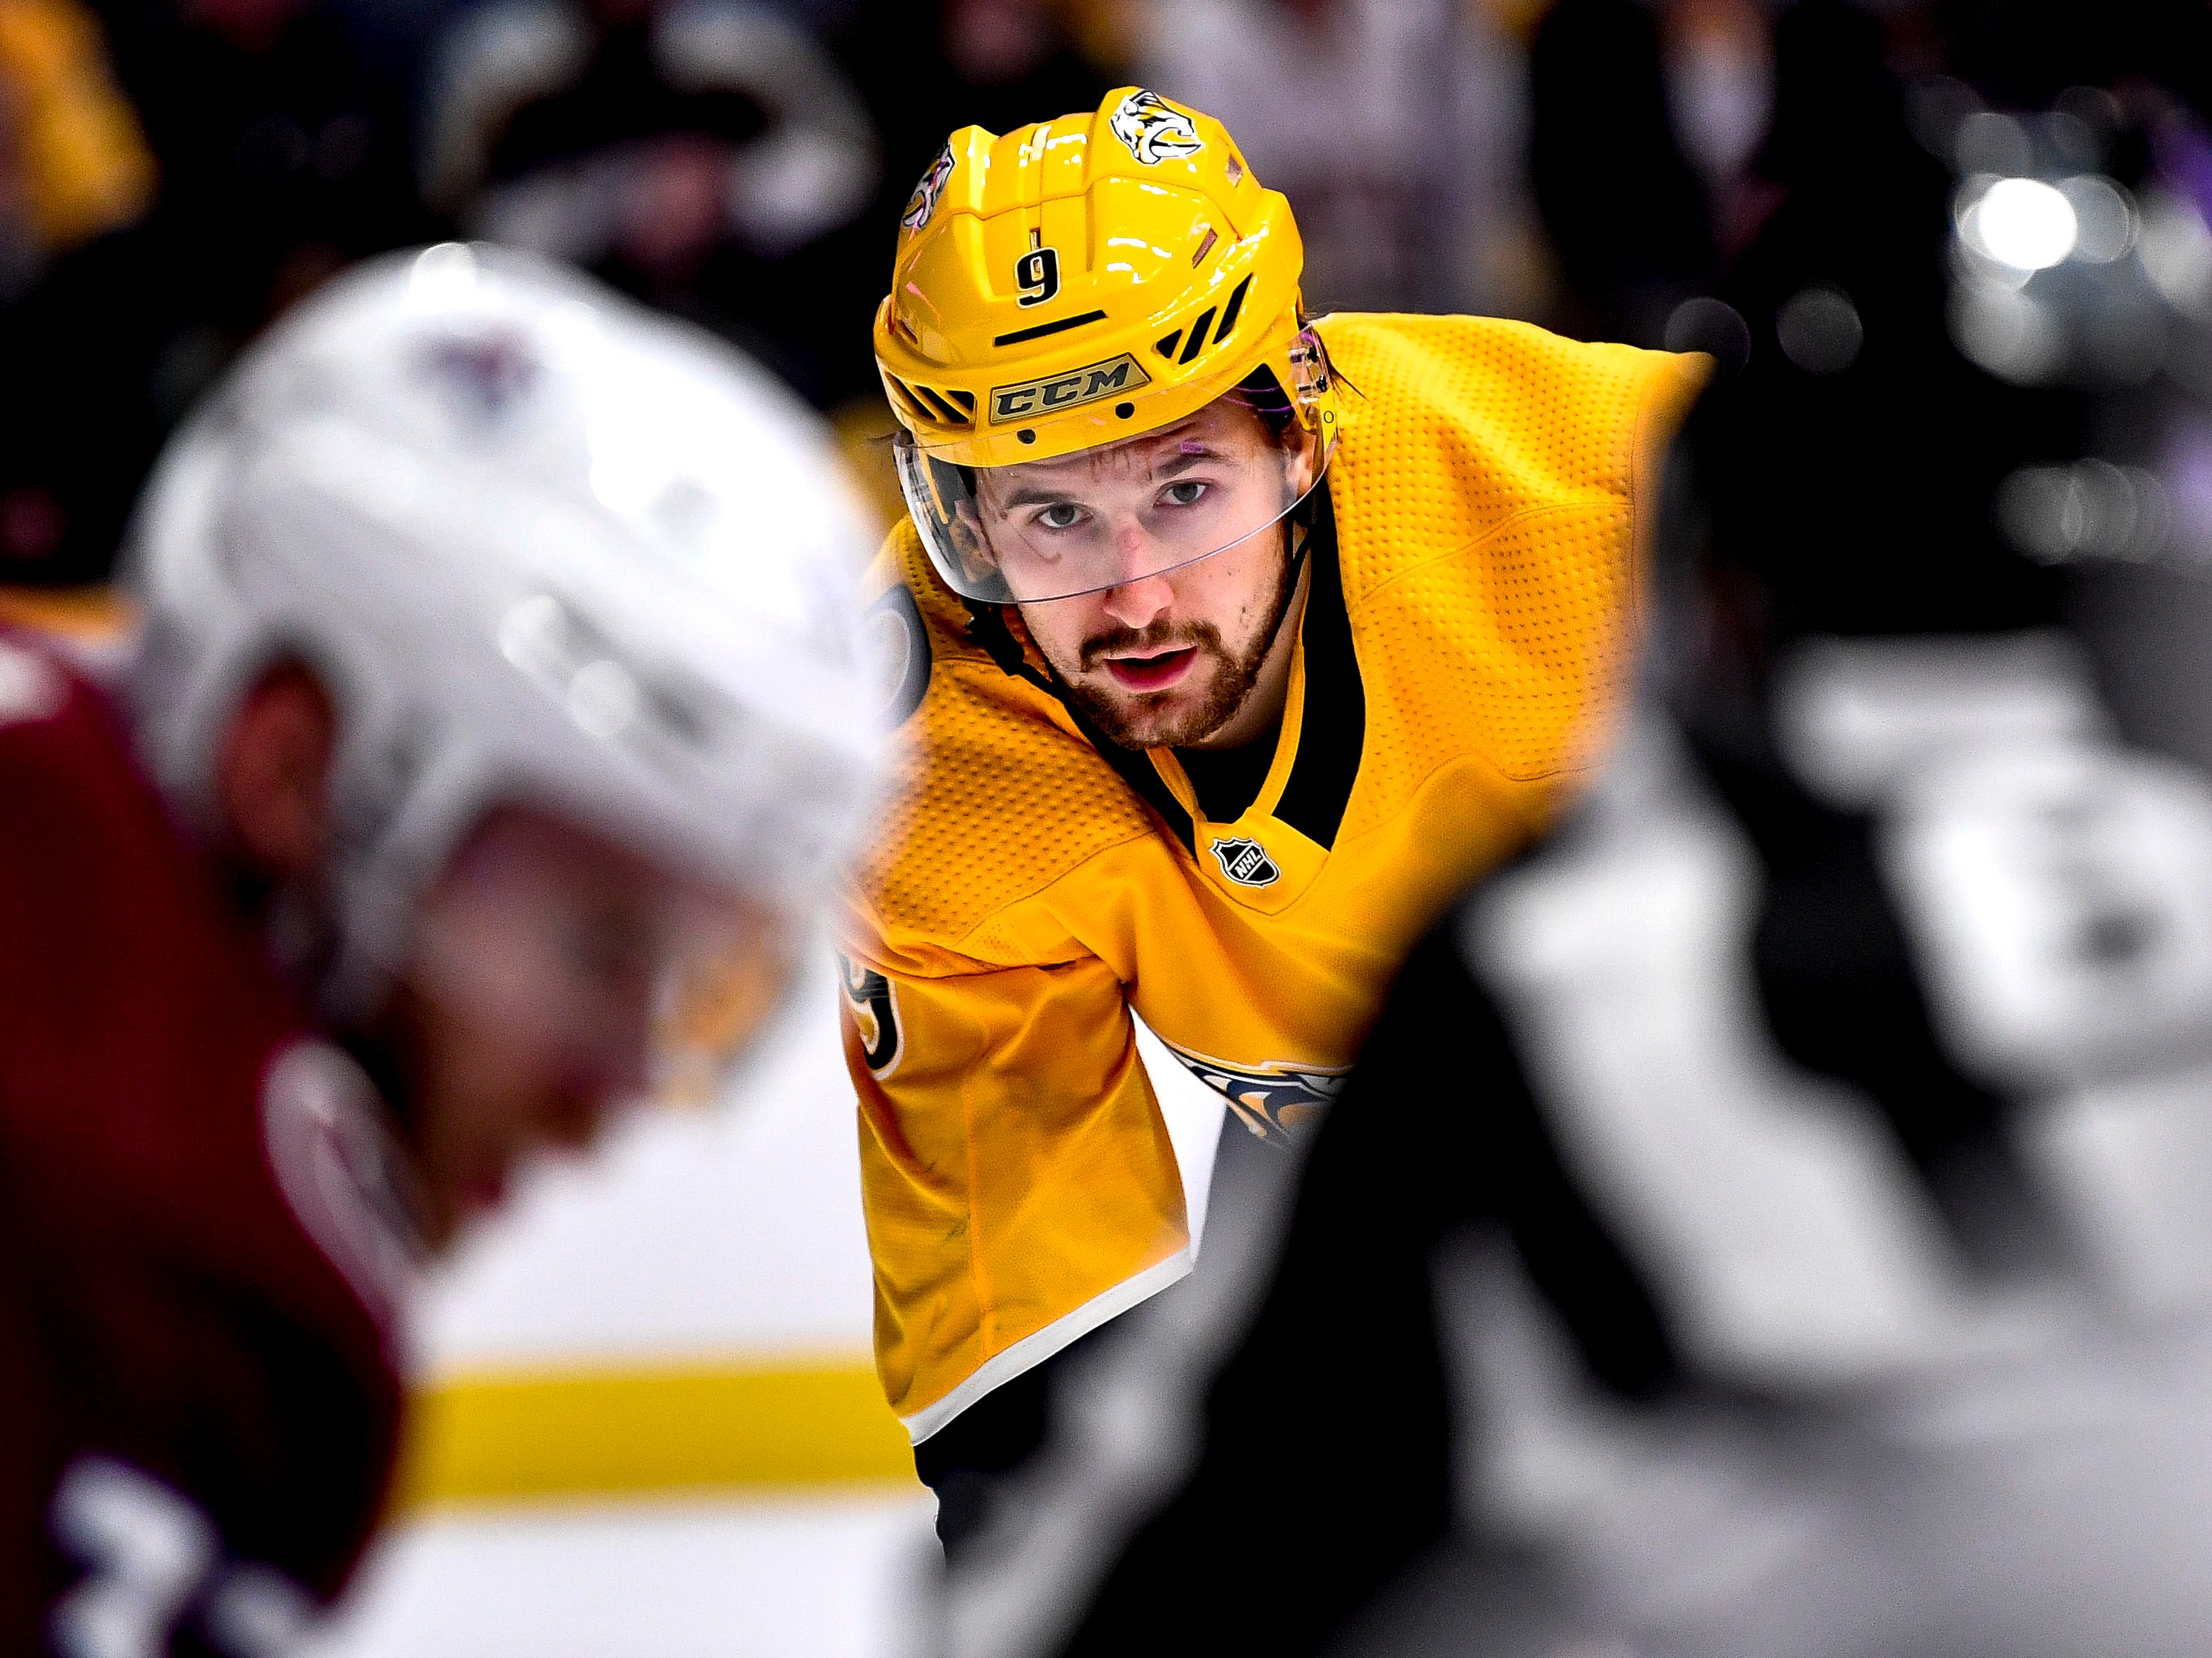 Nashville Predators left wing Filip Forsberg (9) gets into position against the Colorado Avalanche during the first period at Bridgestone Arena in Nashville, Tenn., Tuesday, Nov. 27, 2018.